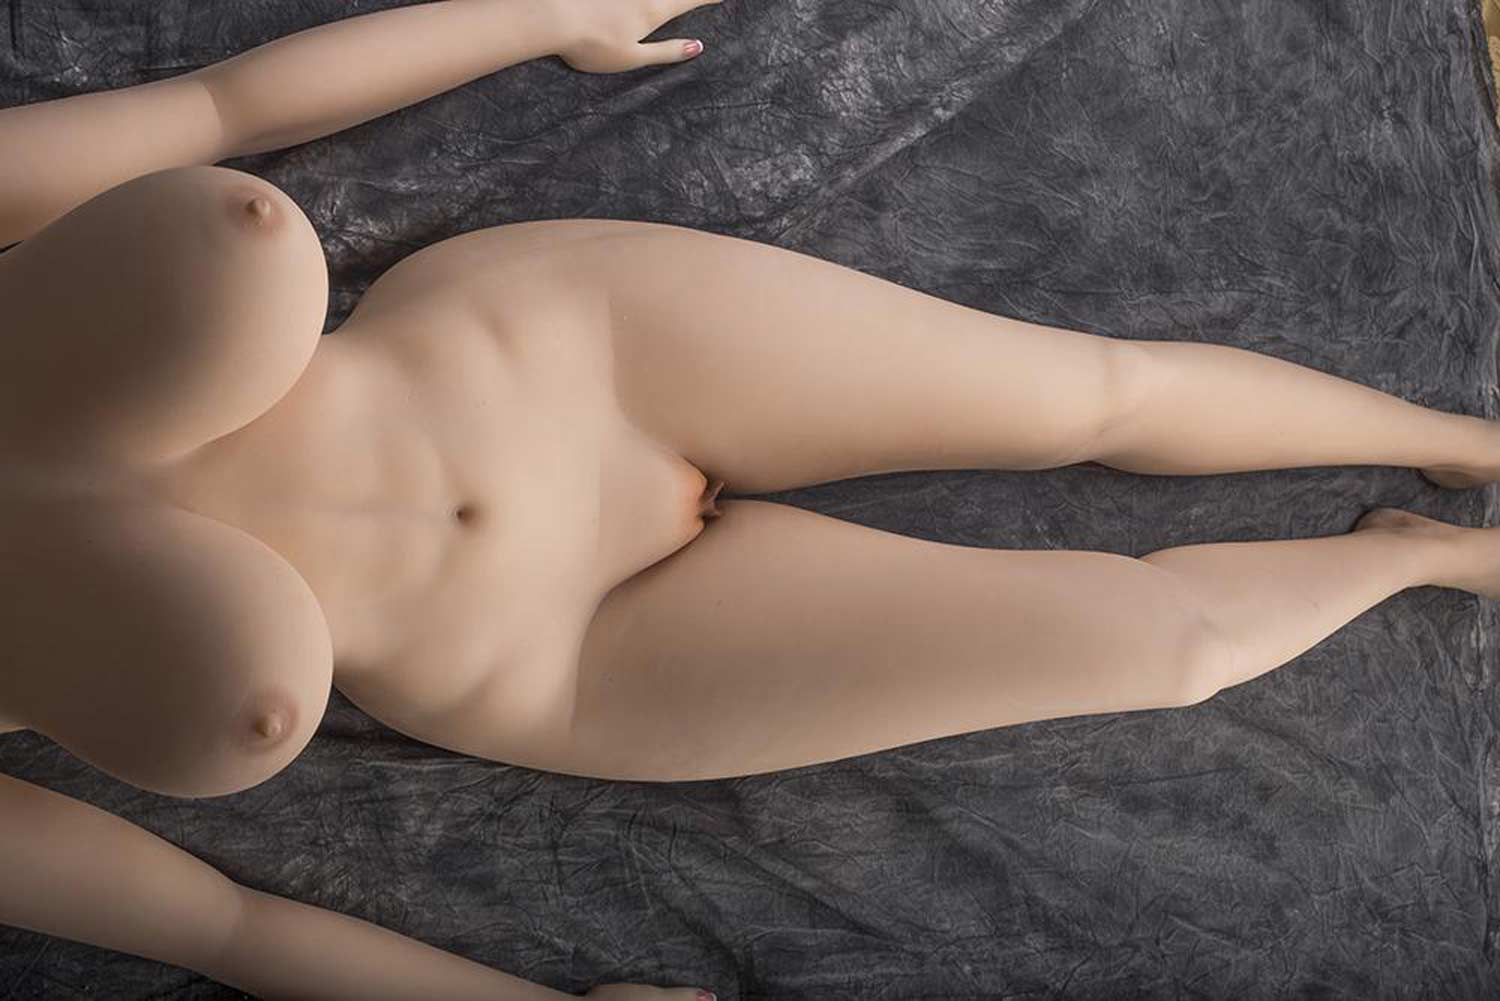 Sex doll with hands on the bed